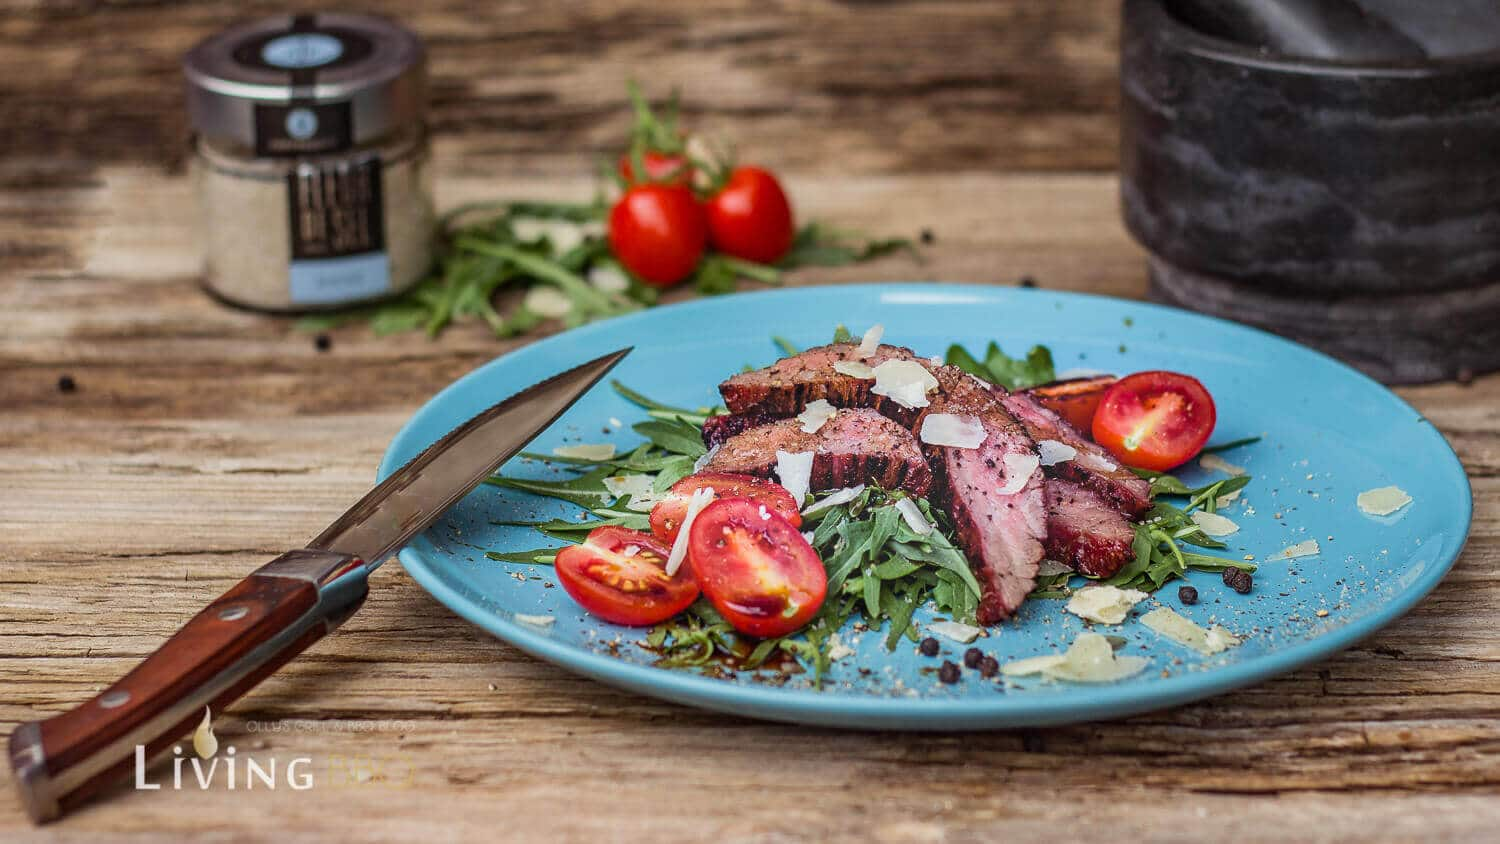 Flank Steak grillen [object object]_Flank Steak auf Ruccola 12 von 23